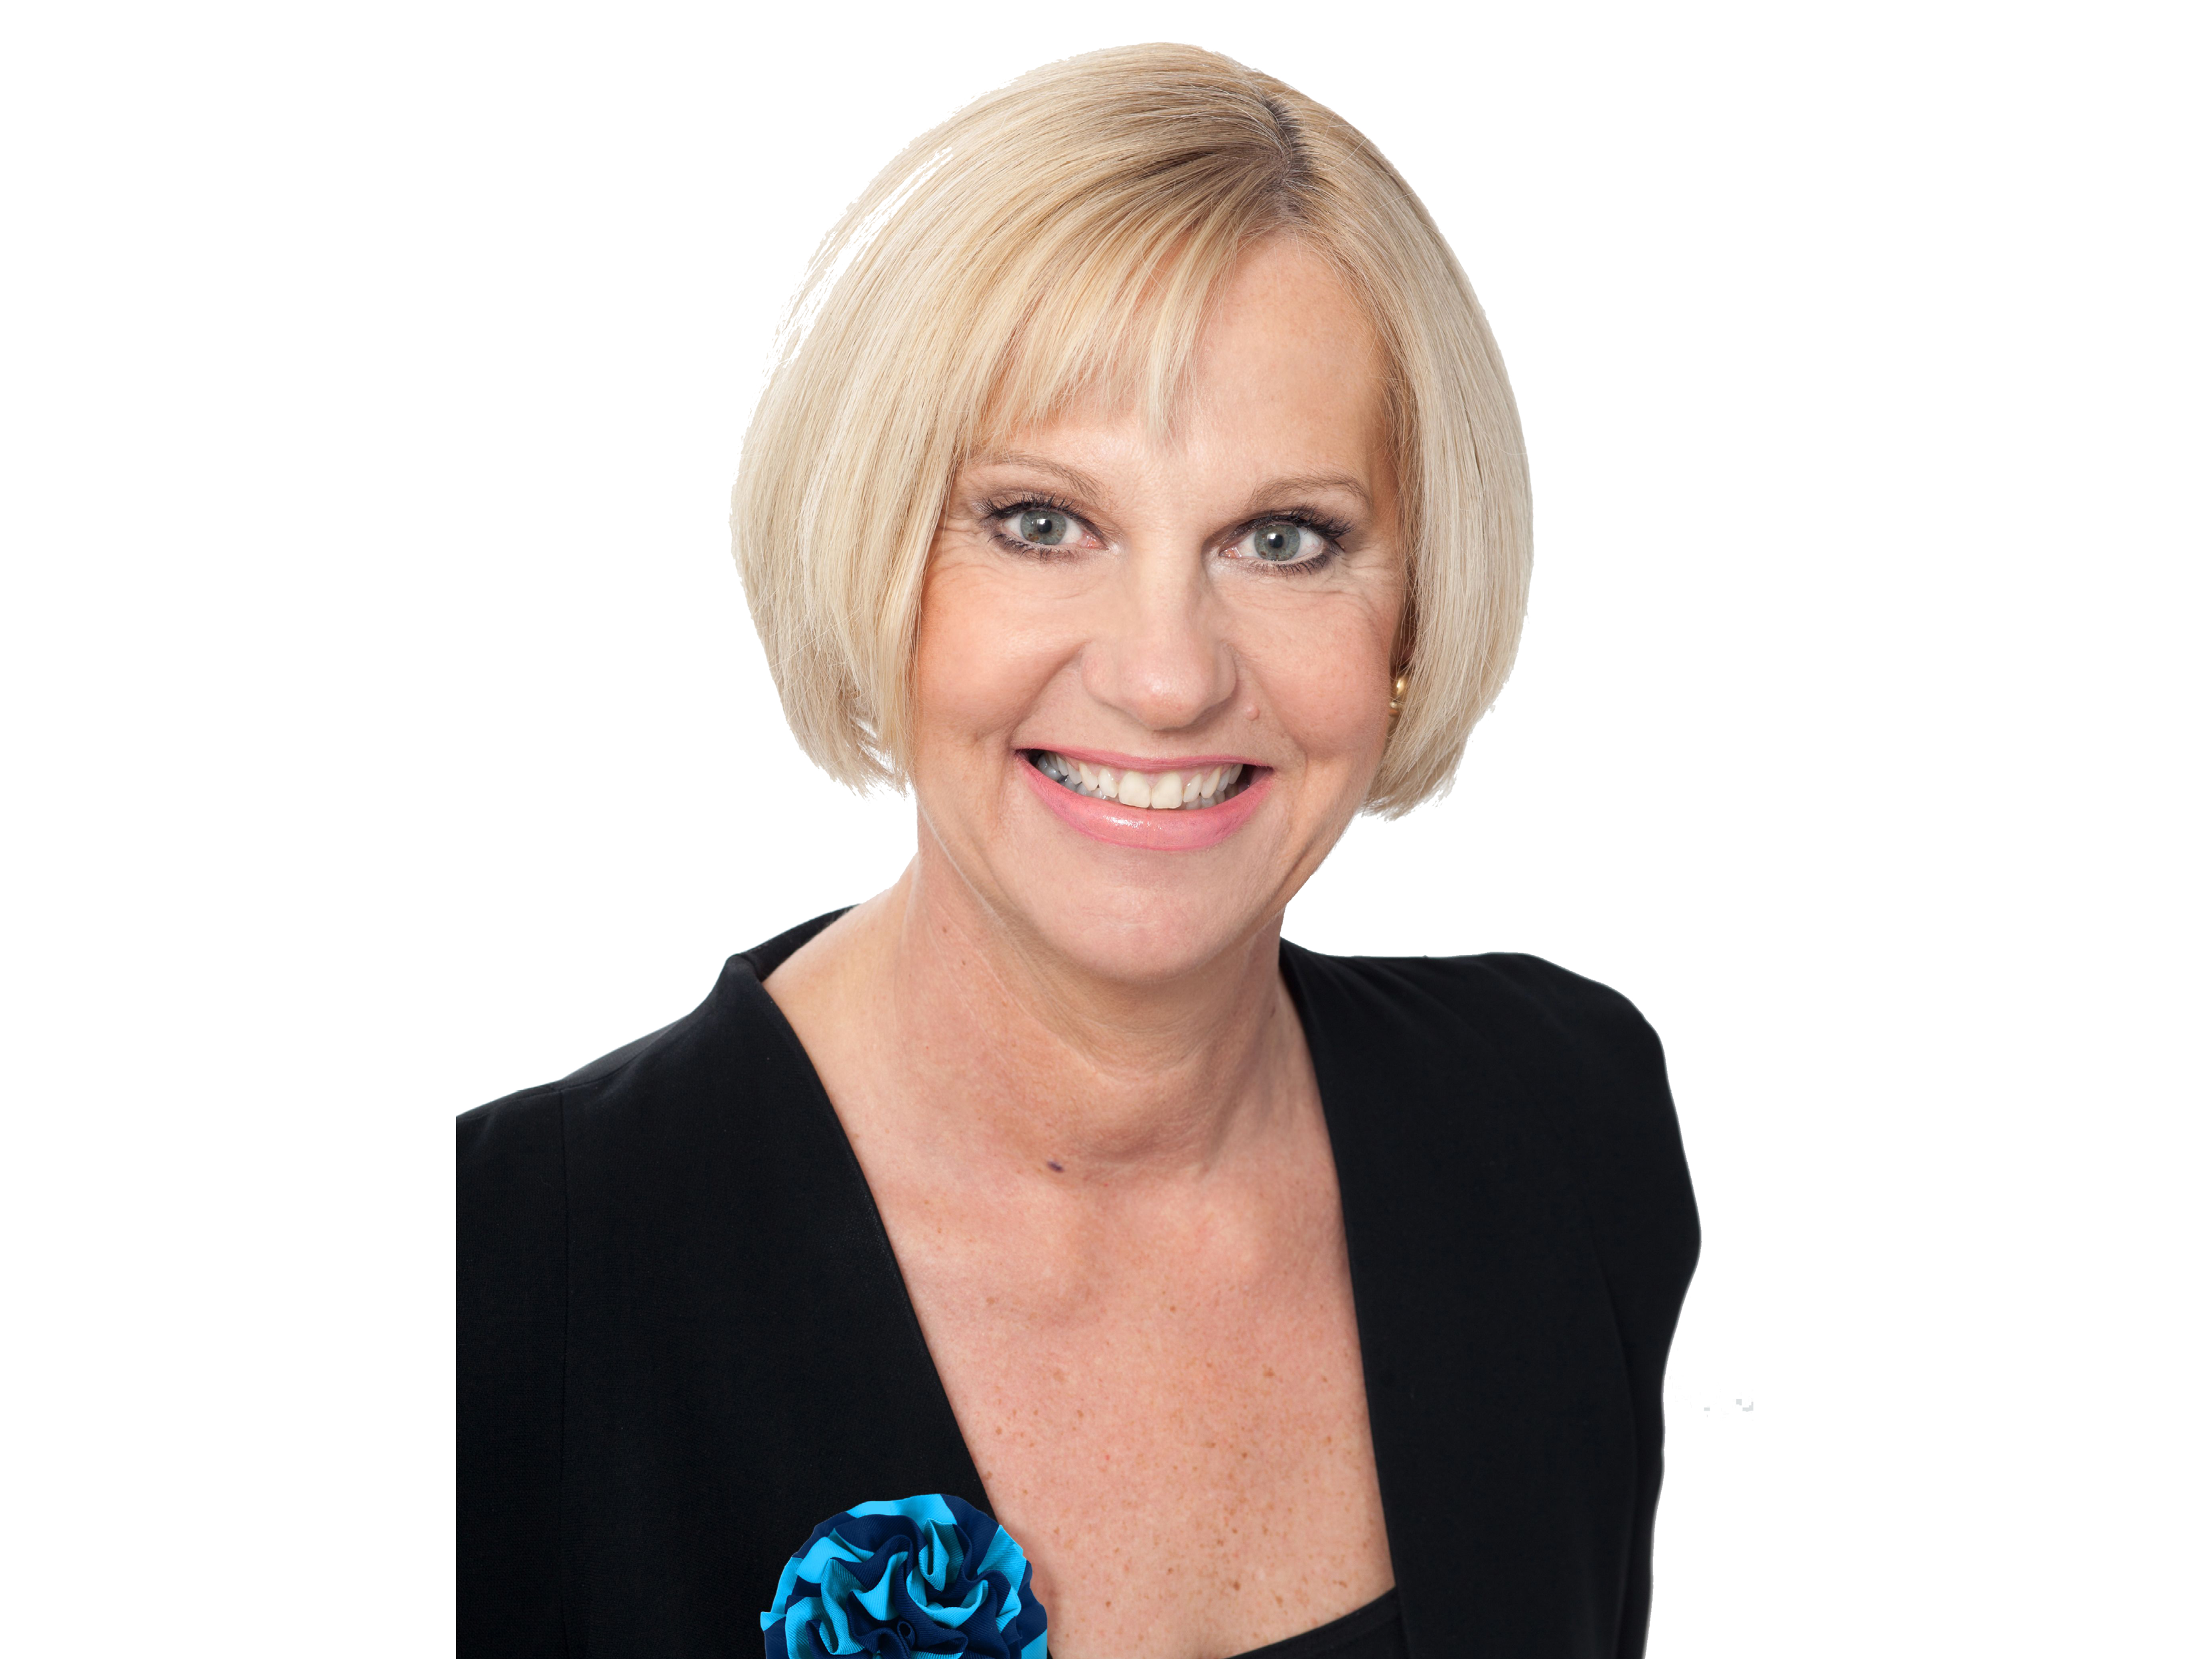 REINZ announces the appointment of Jo Clifford to its Board